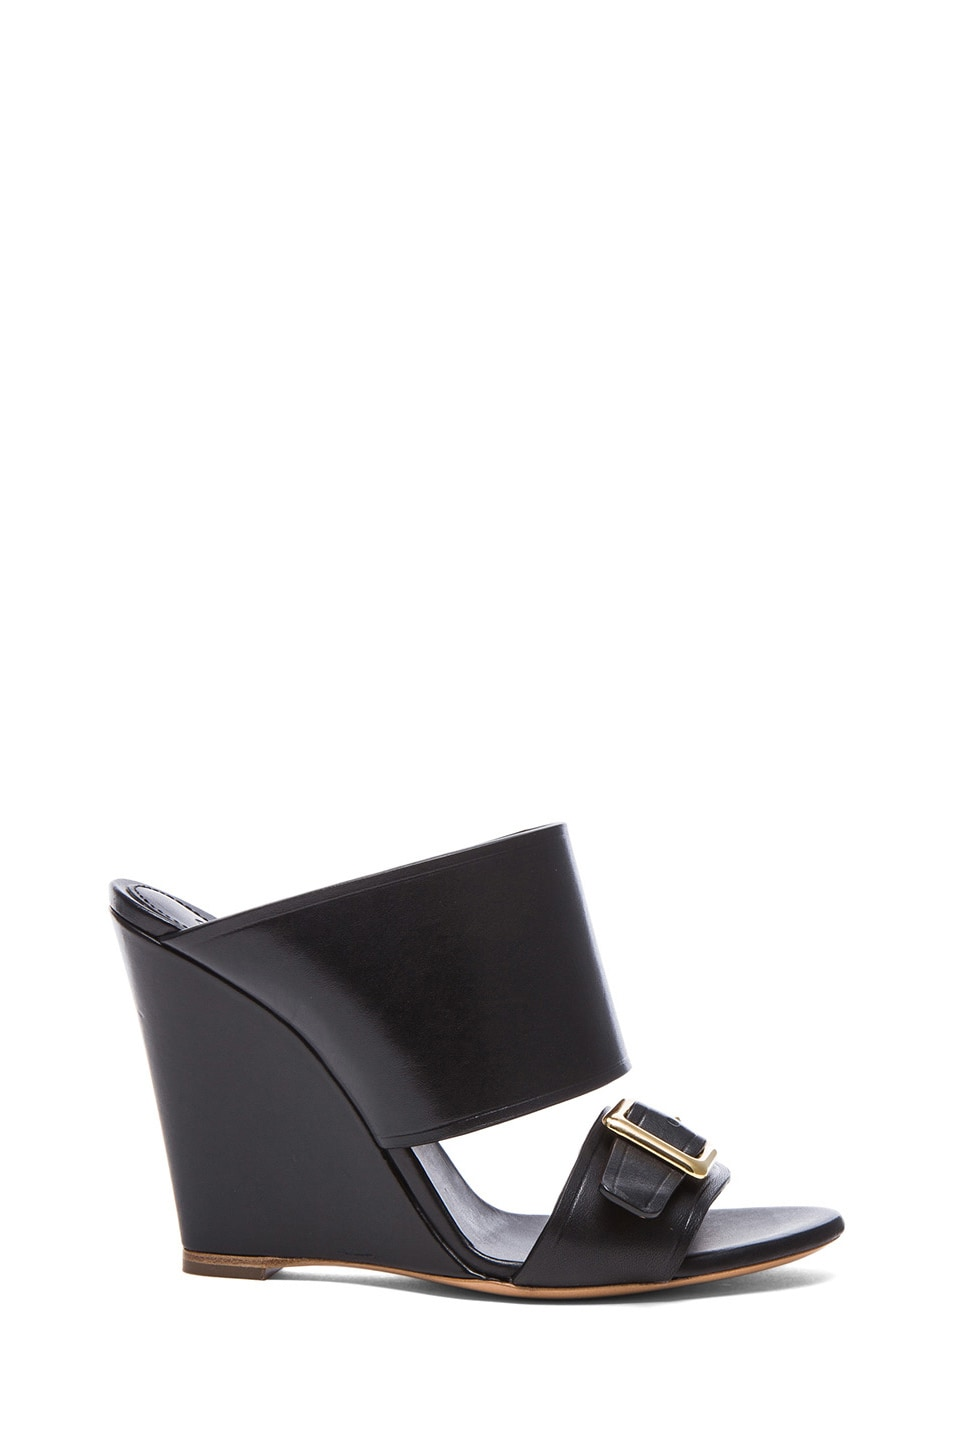 Image 1 of Chloe Strap Leather Mules in Black